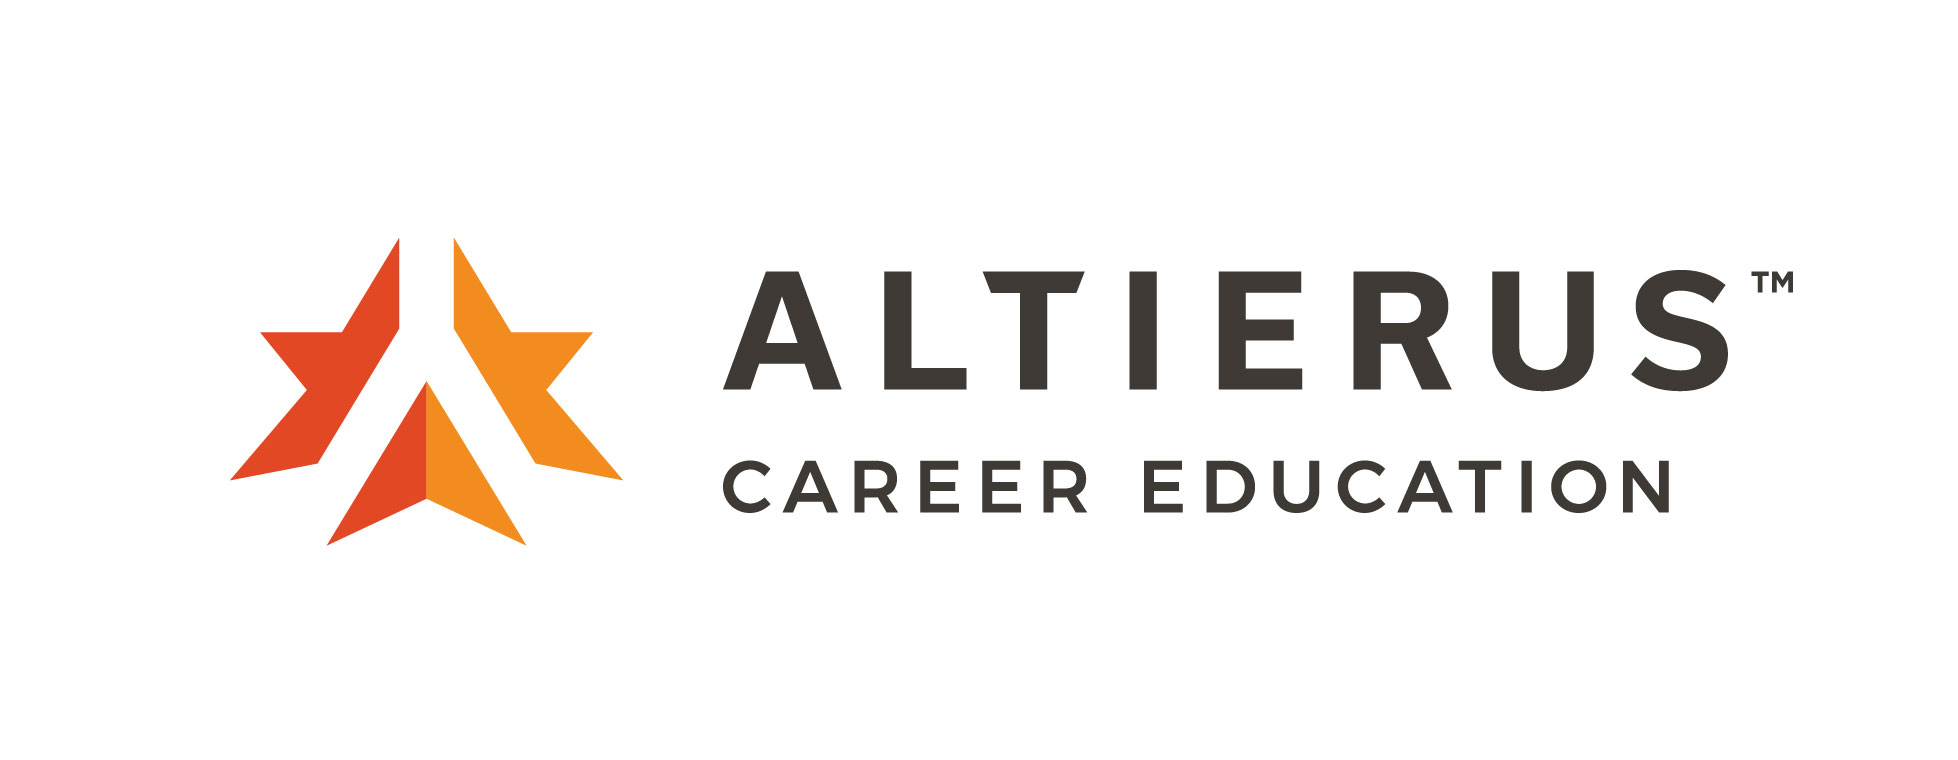 Altierus Career Education logo